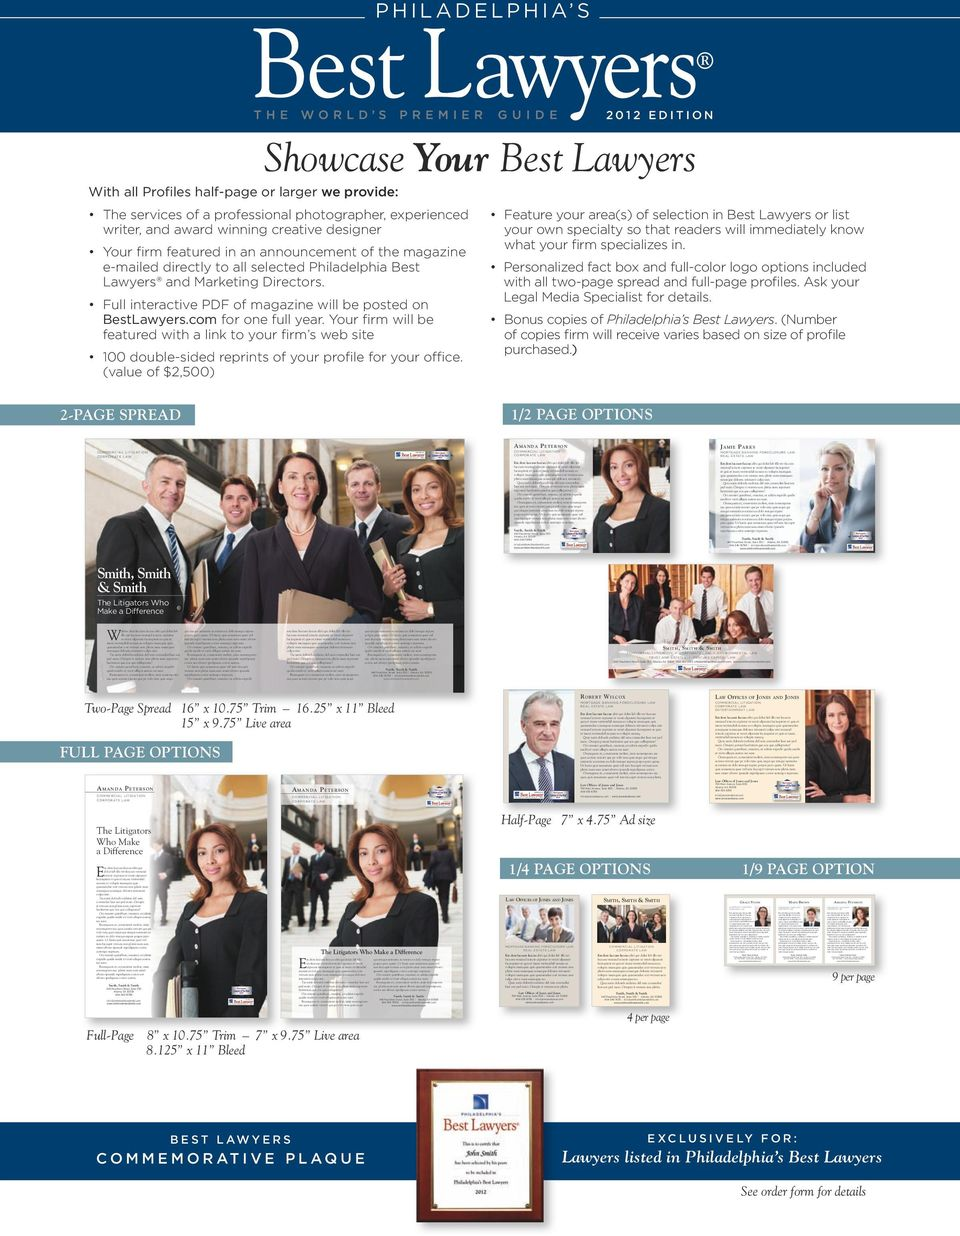 F ull interactive PDF magazine will be posted on BestLawyers.com for one full year.